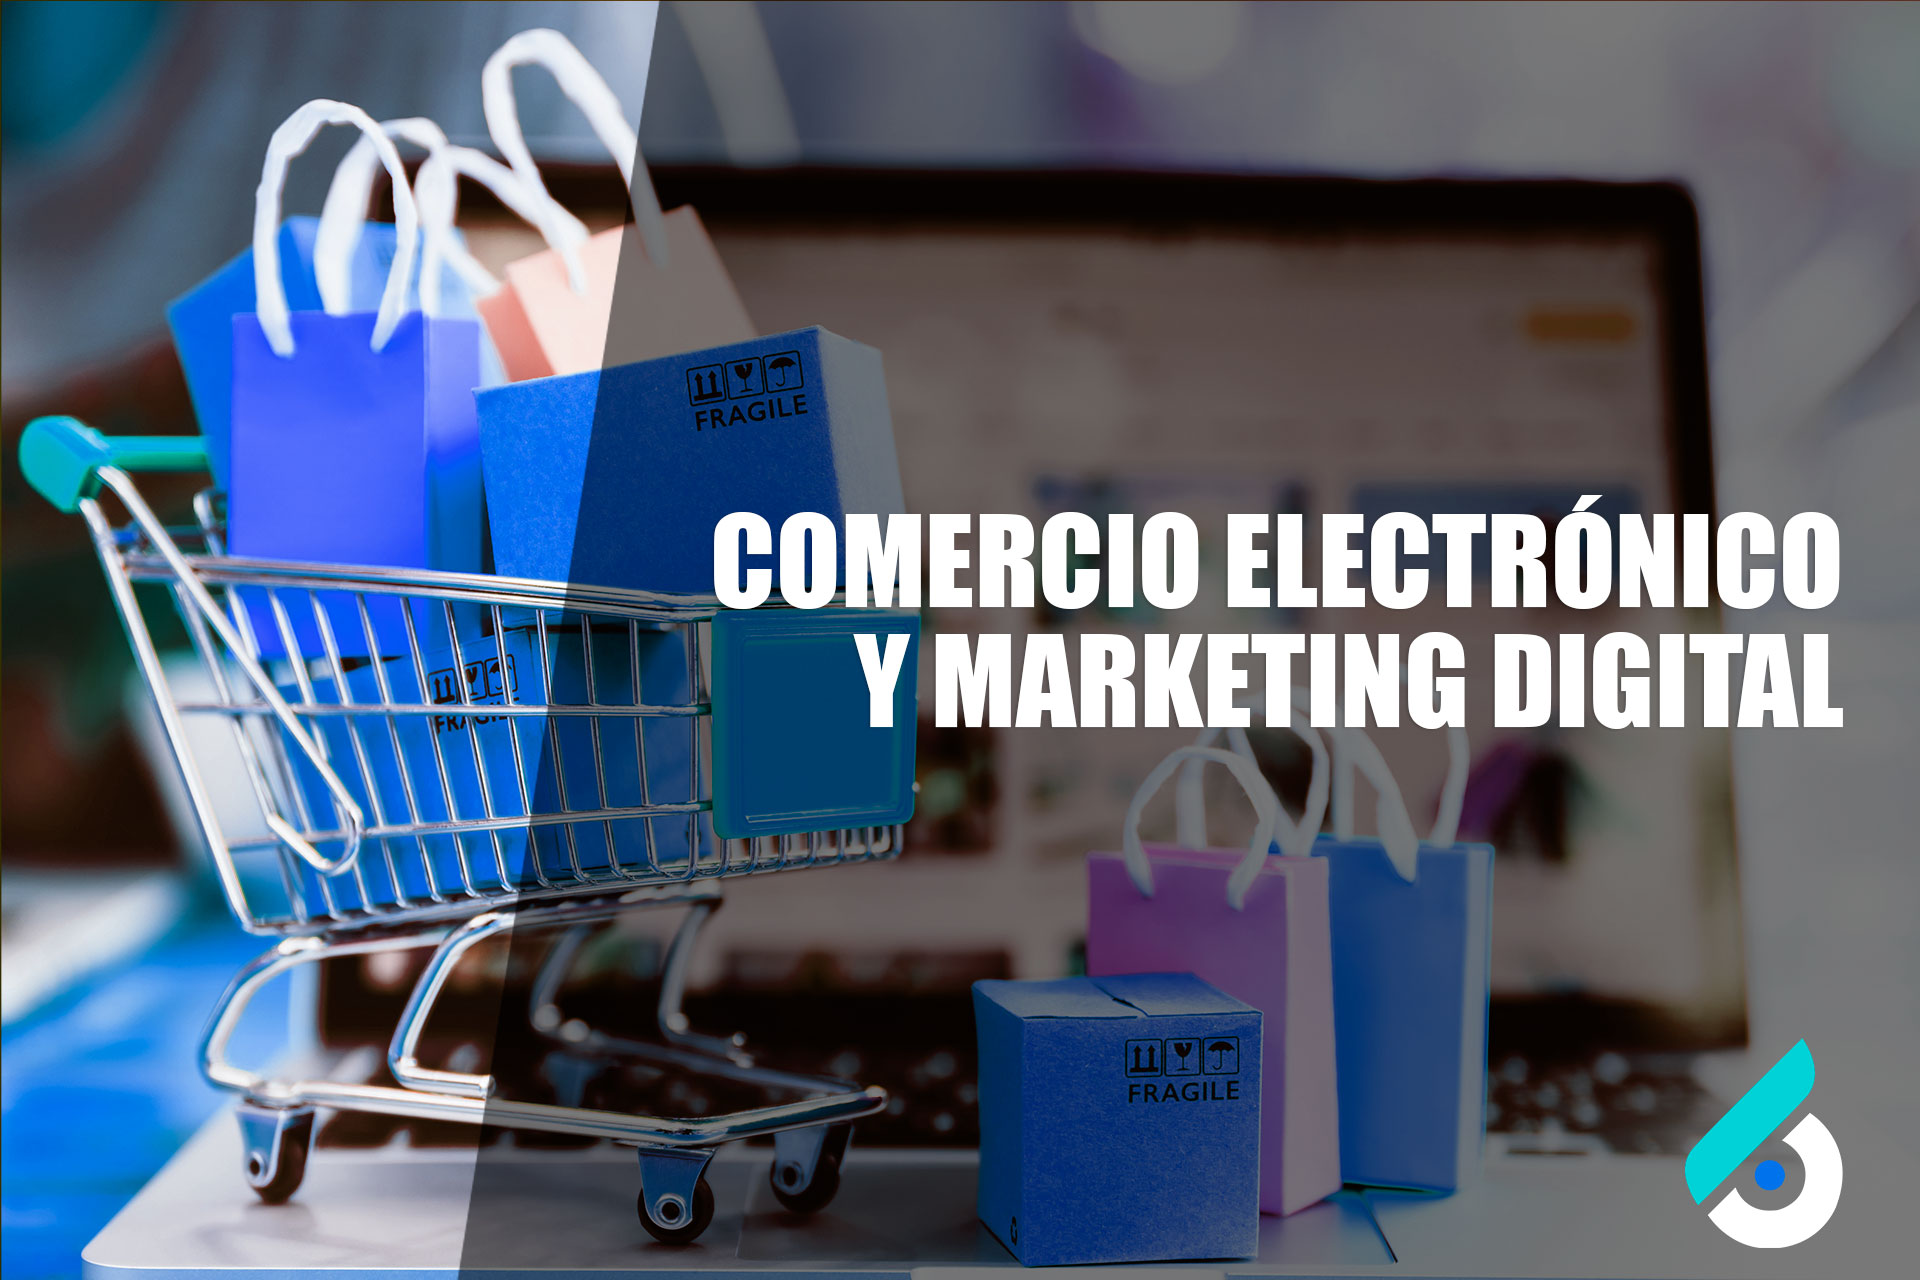 DMIPE-20-01-13-0426-1 | Comercio Electrónico y Marketing Digital